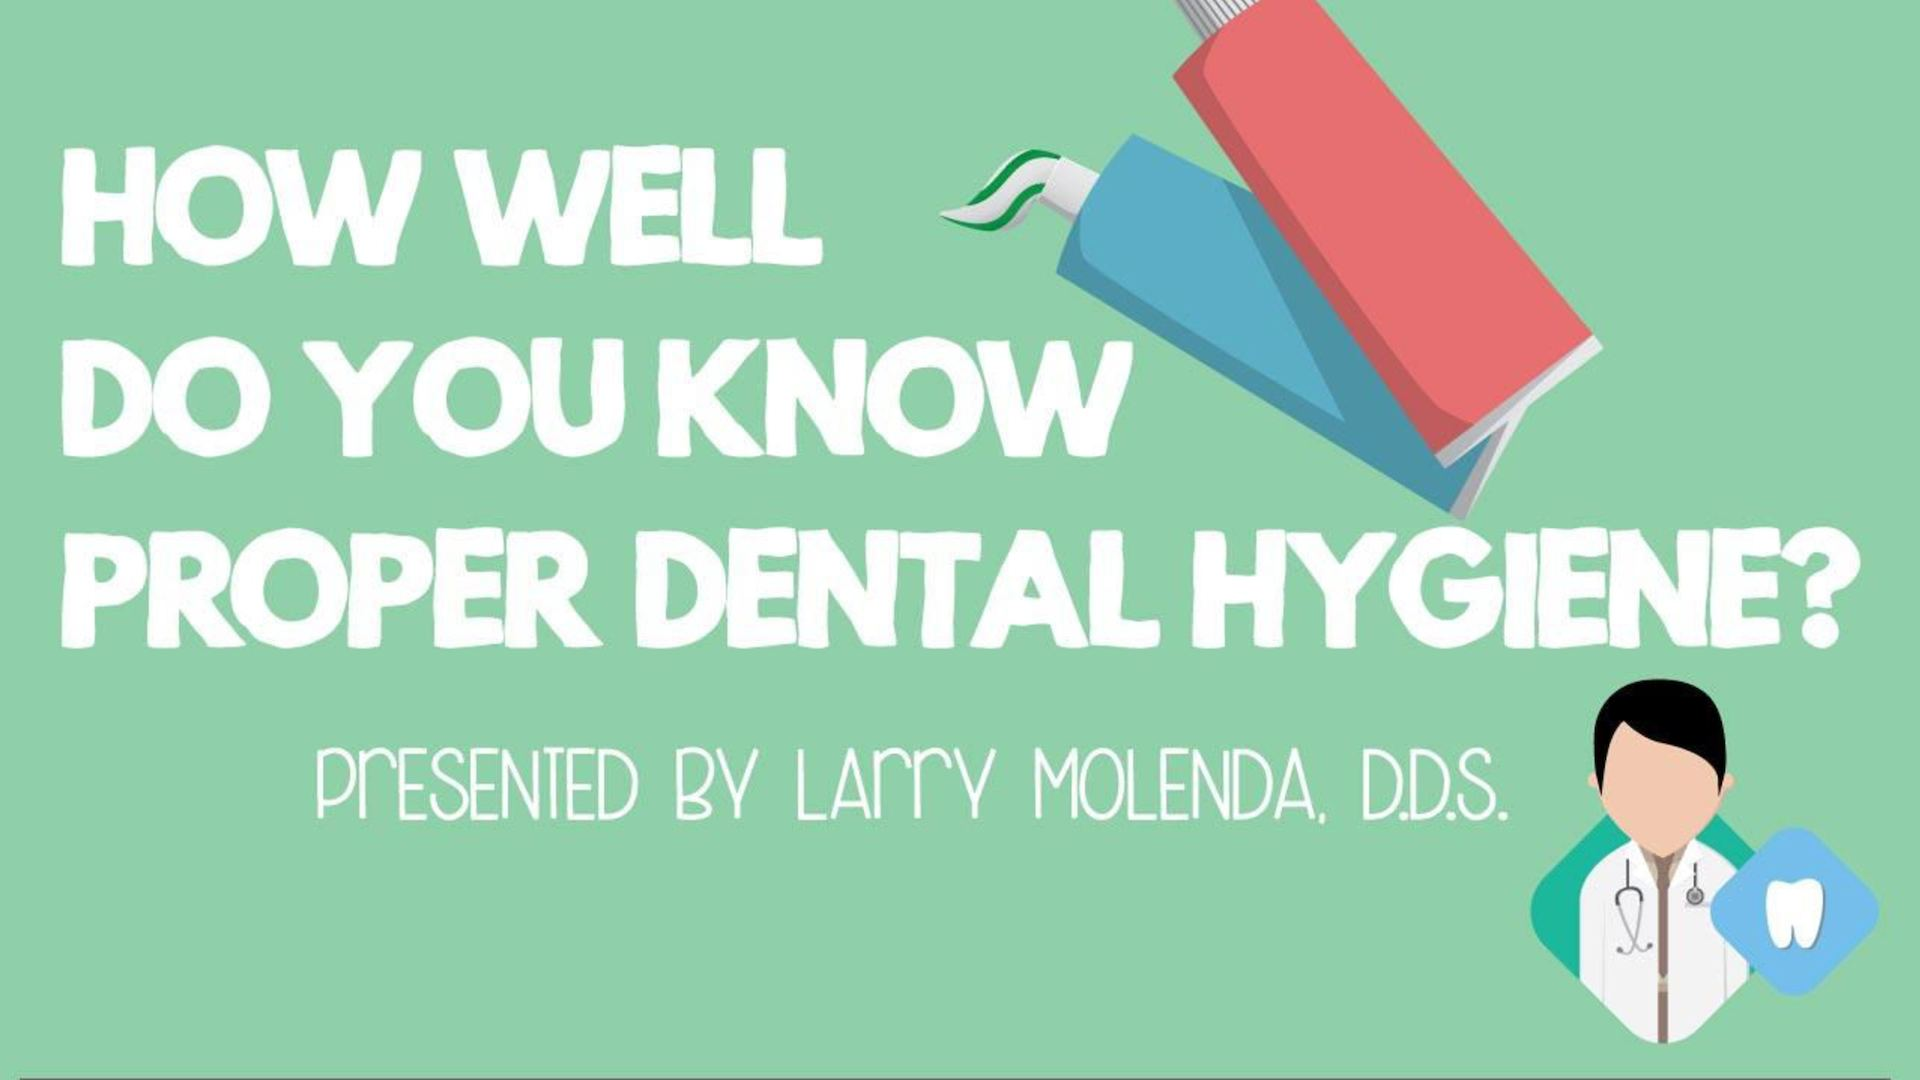 dental hygiene essay topics Free persuasive essay on personal hygiene papers, essays, and research papers.